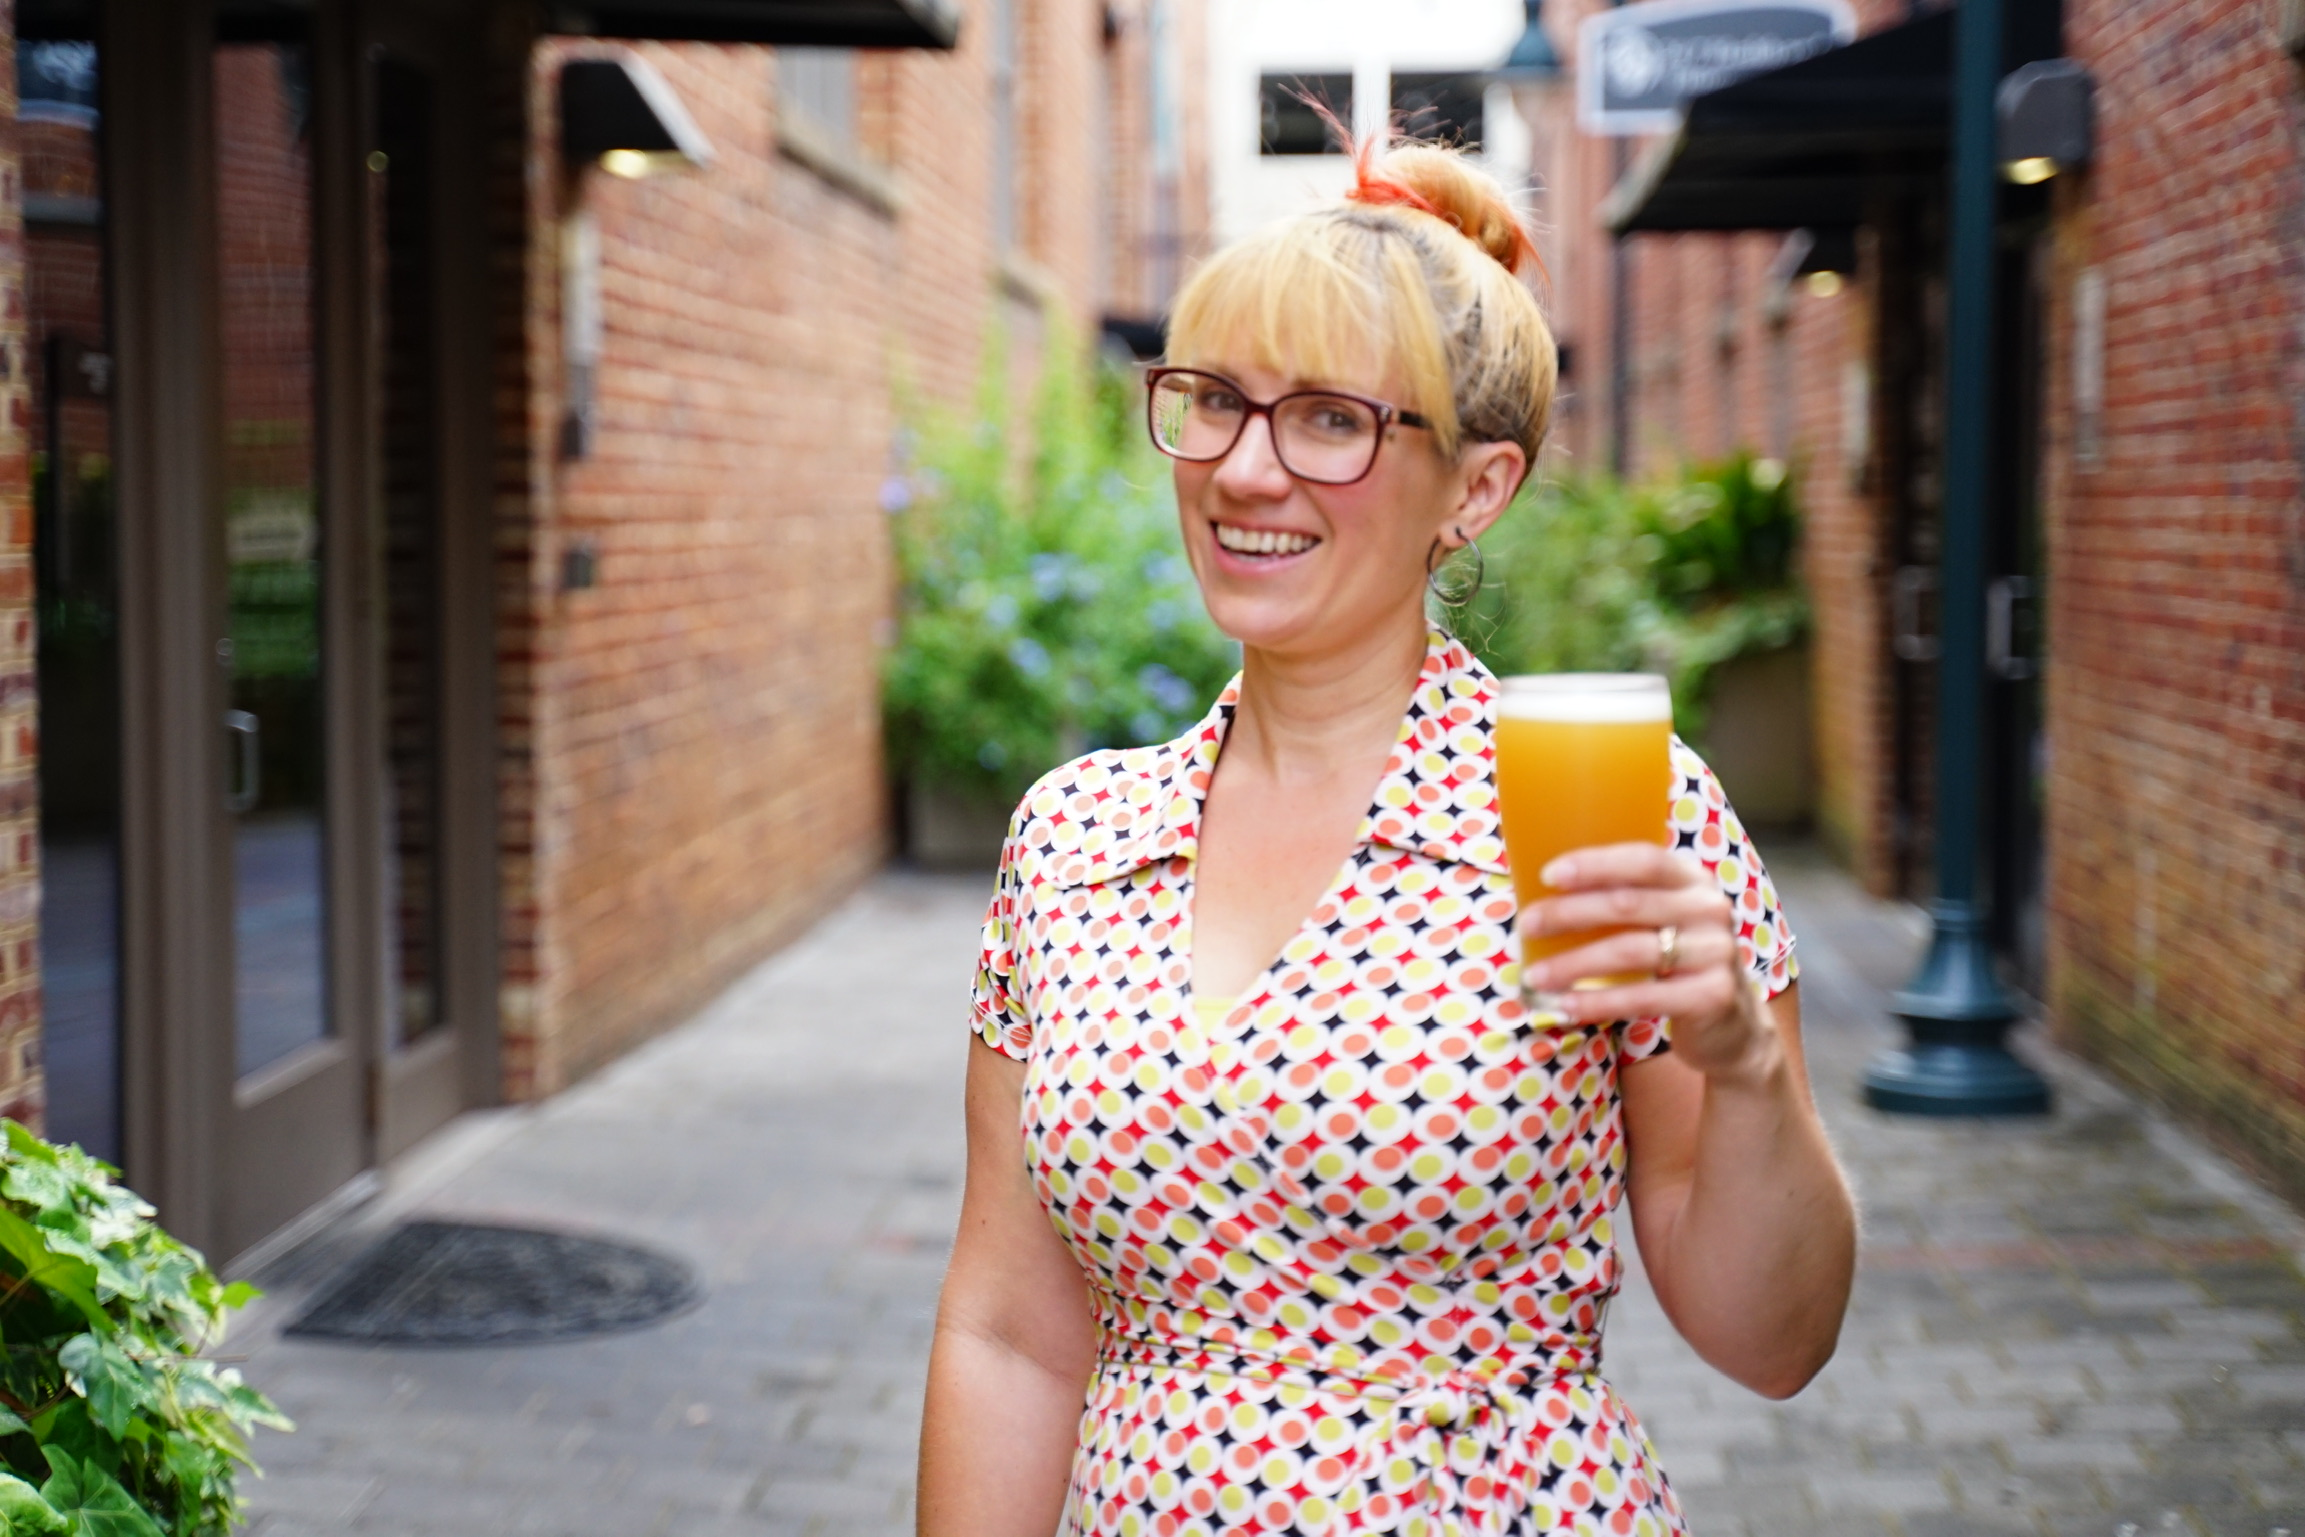 An image of a woman with glasses smiling and holding a pint of beer.